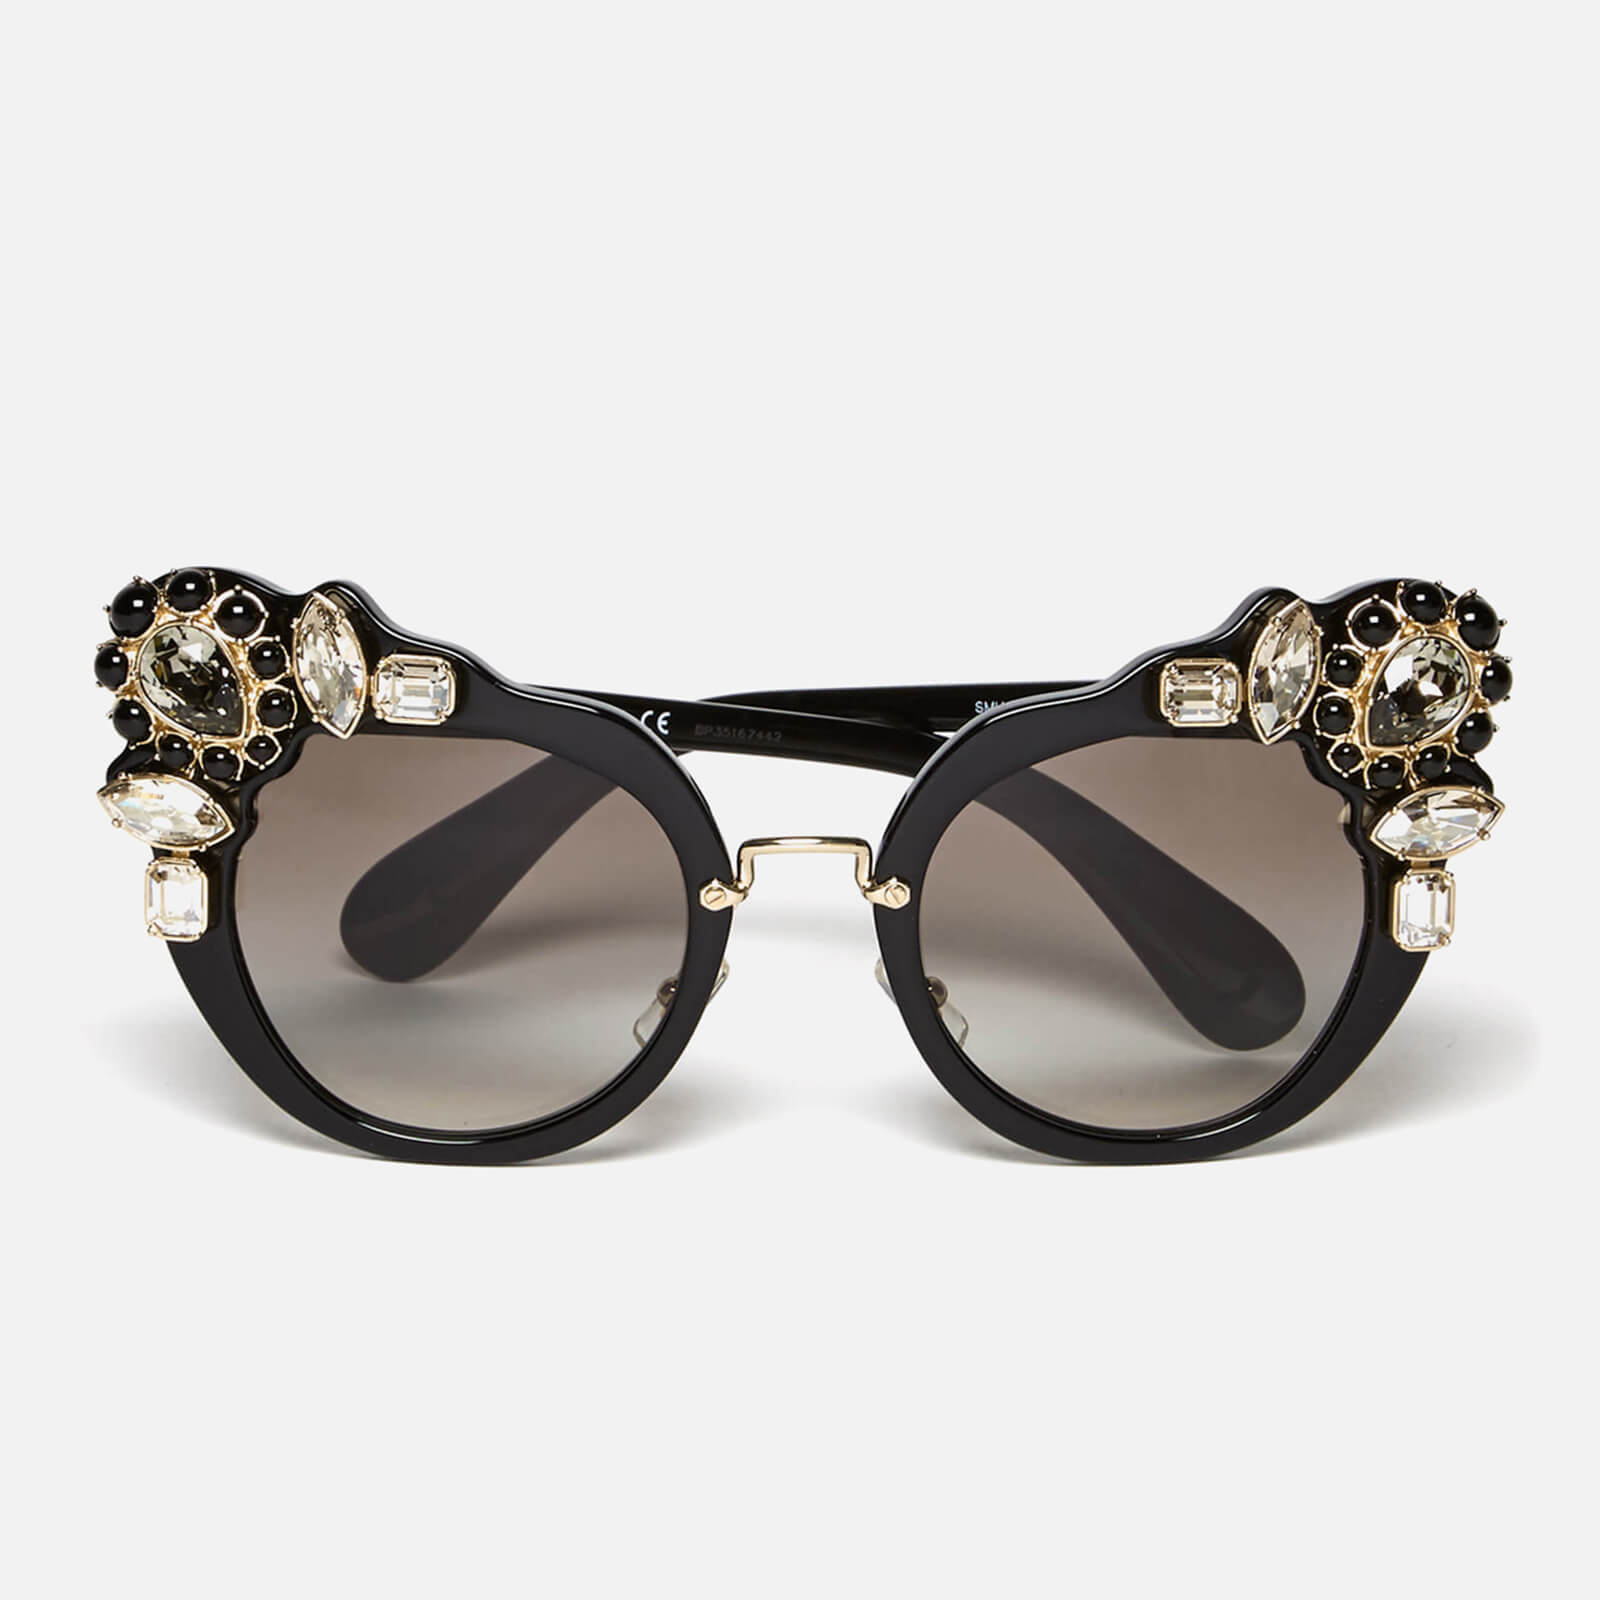 9f8e07017fc Miu Miu Women s Couture Cat Eye Sunglasses - Black - Free UK Delivery over  £50